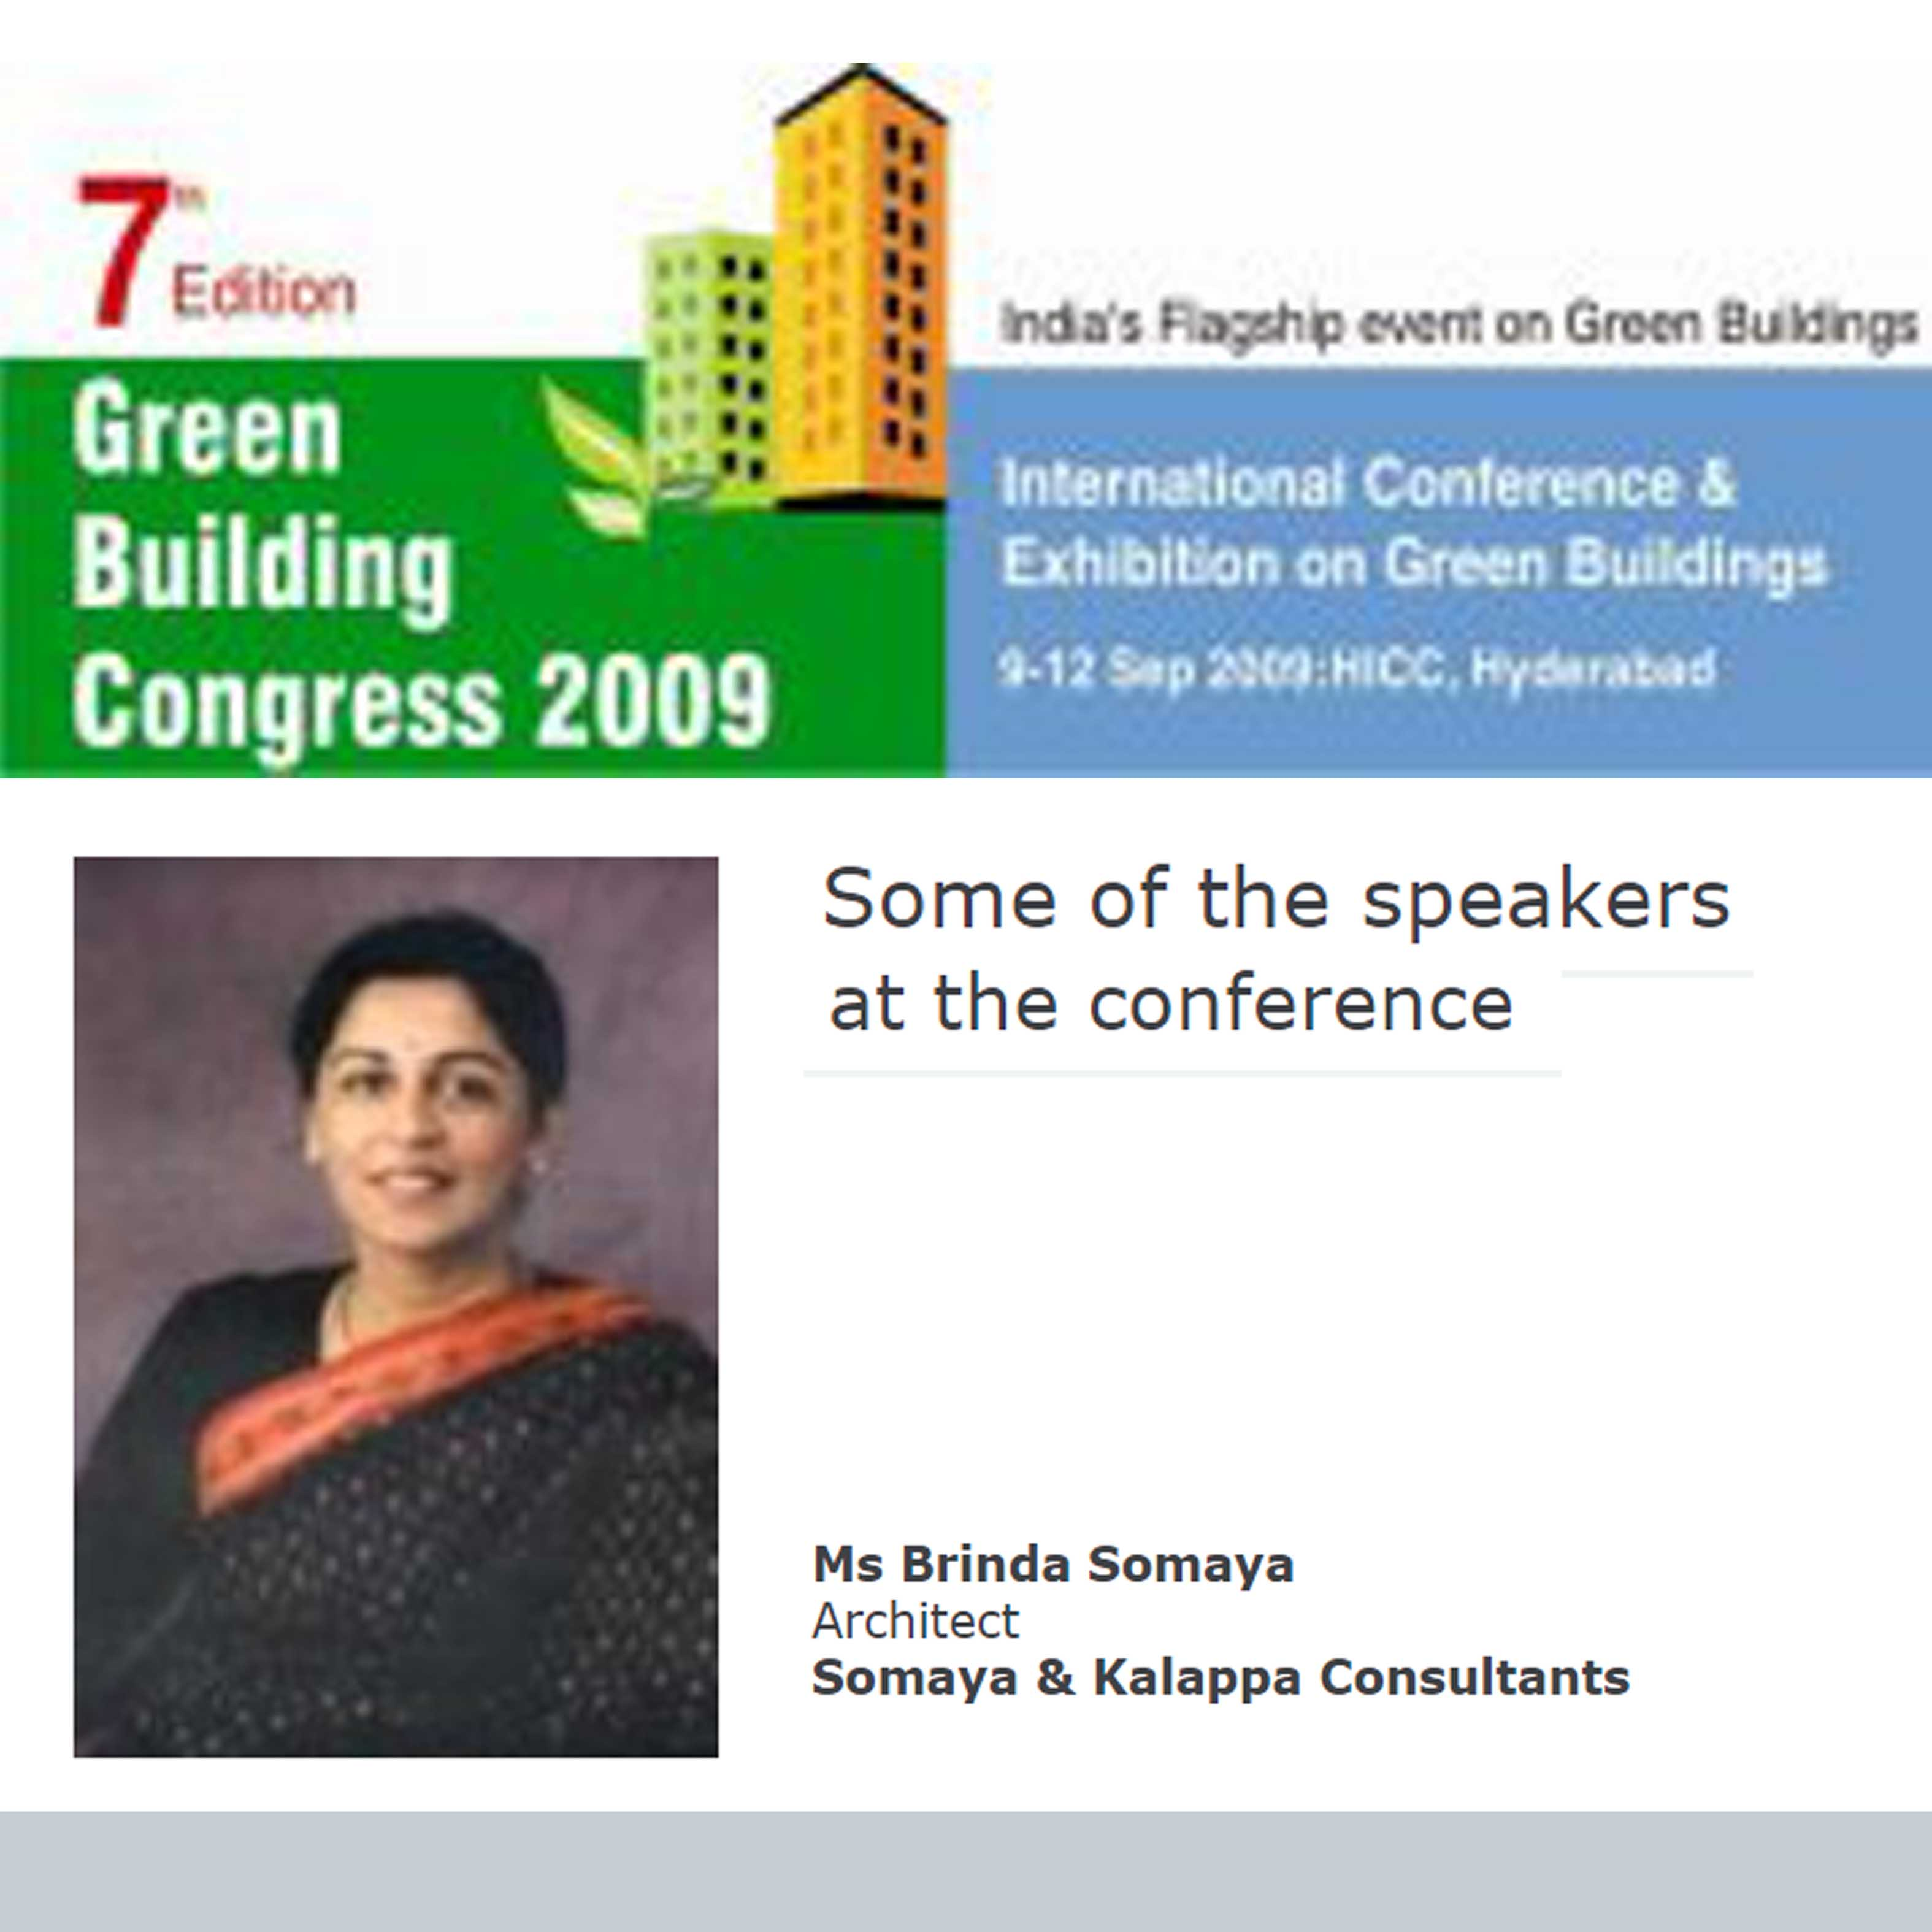 7th Edition Green Building Congress - 2009